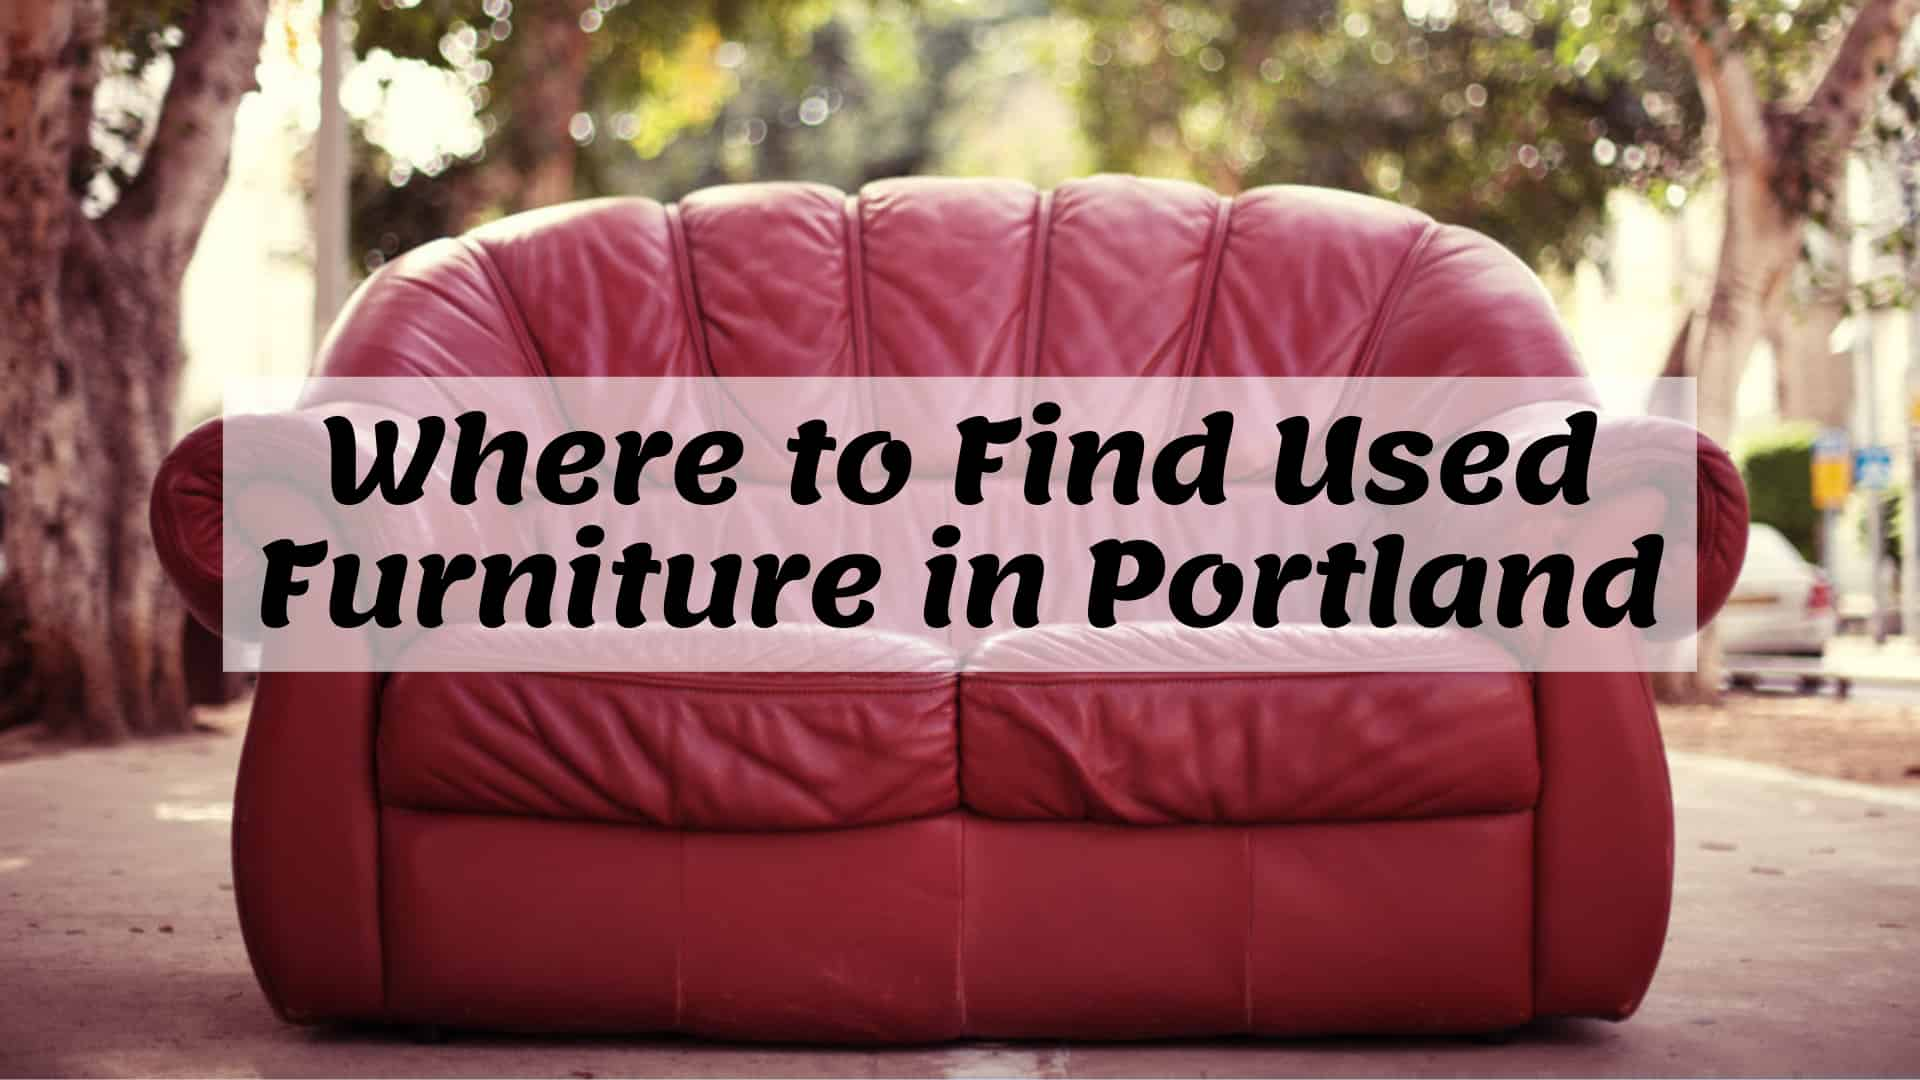 Where to Find Used Furniture in Portland